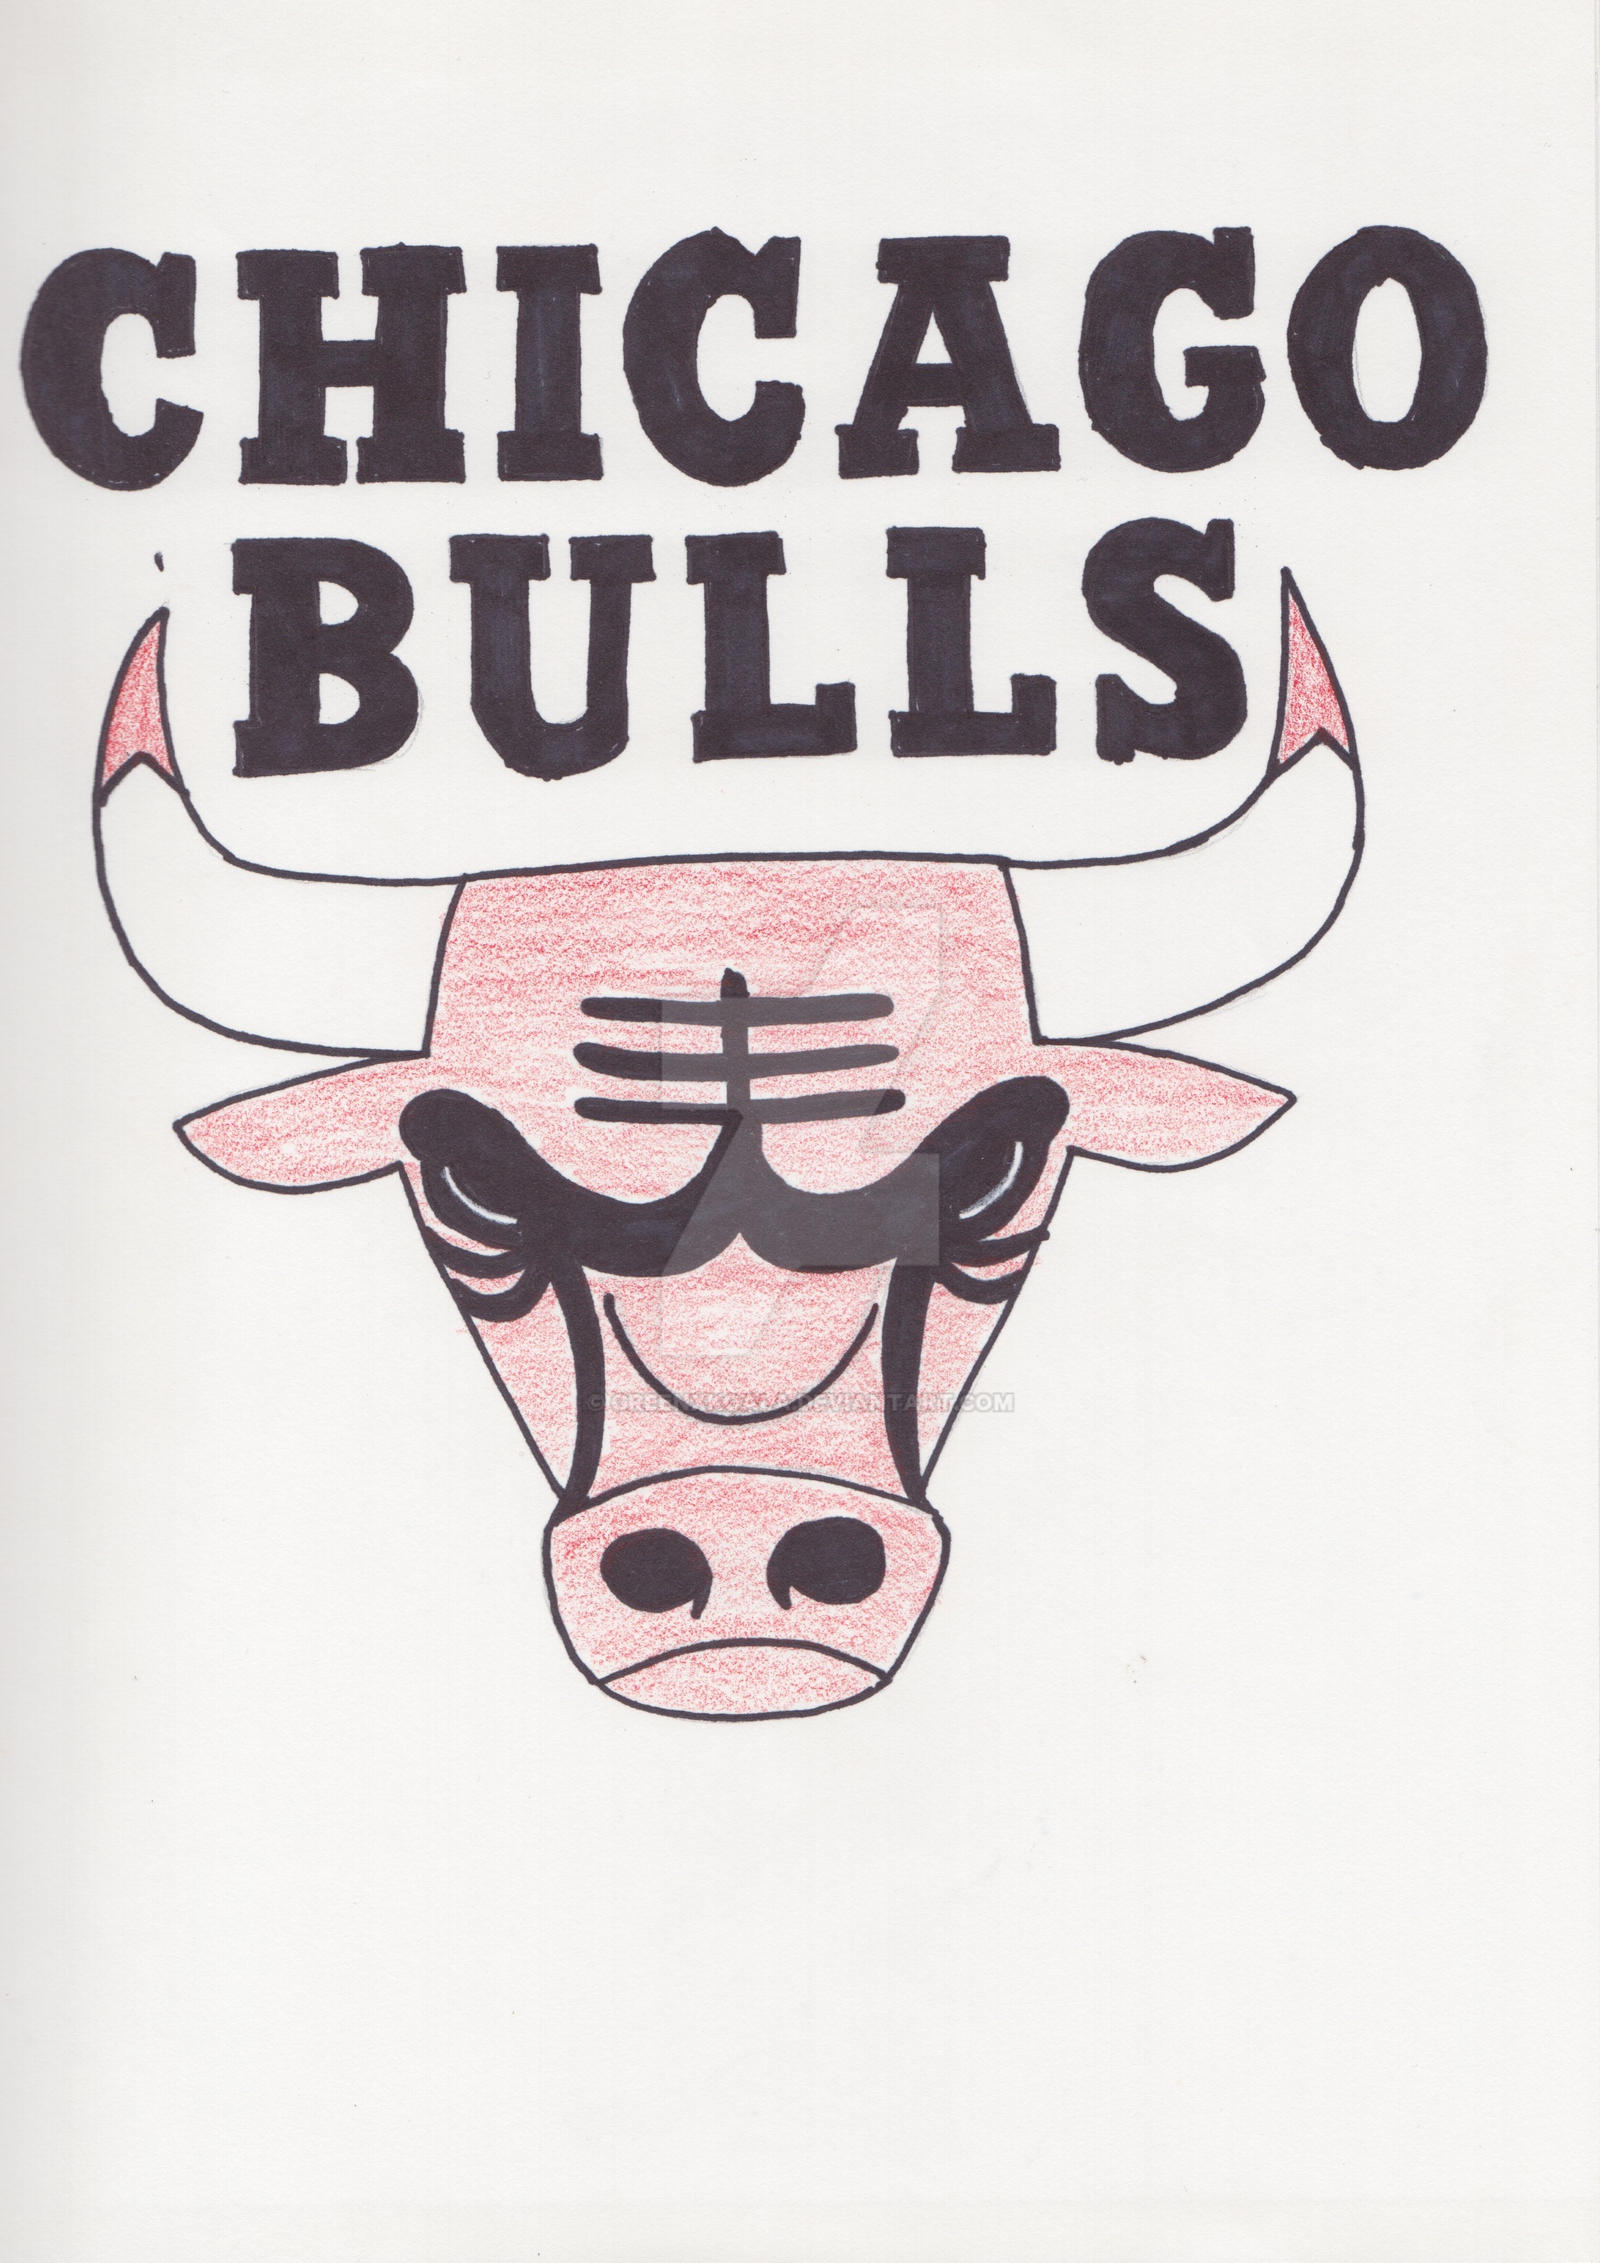 Chicago bulls logo by greenxkoala on deviantart chicago bulls logo by greenxkoala chicago bulls logo by greenxkoala voltagebd Images